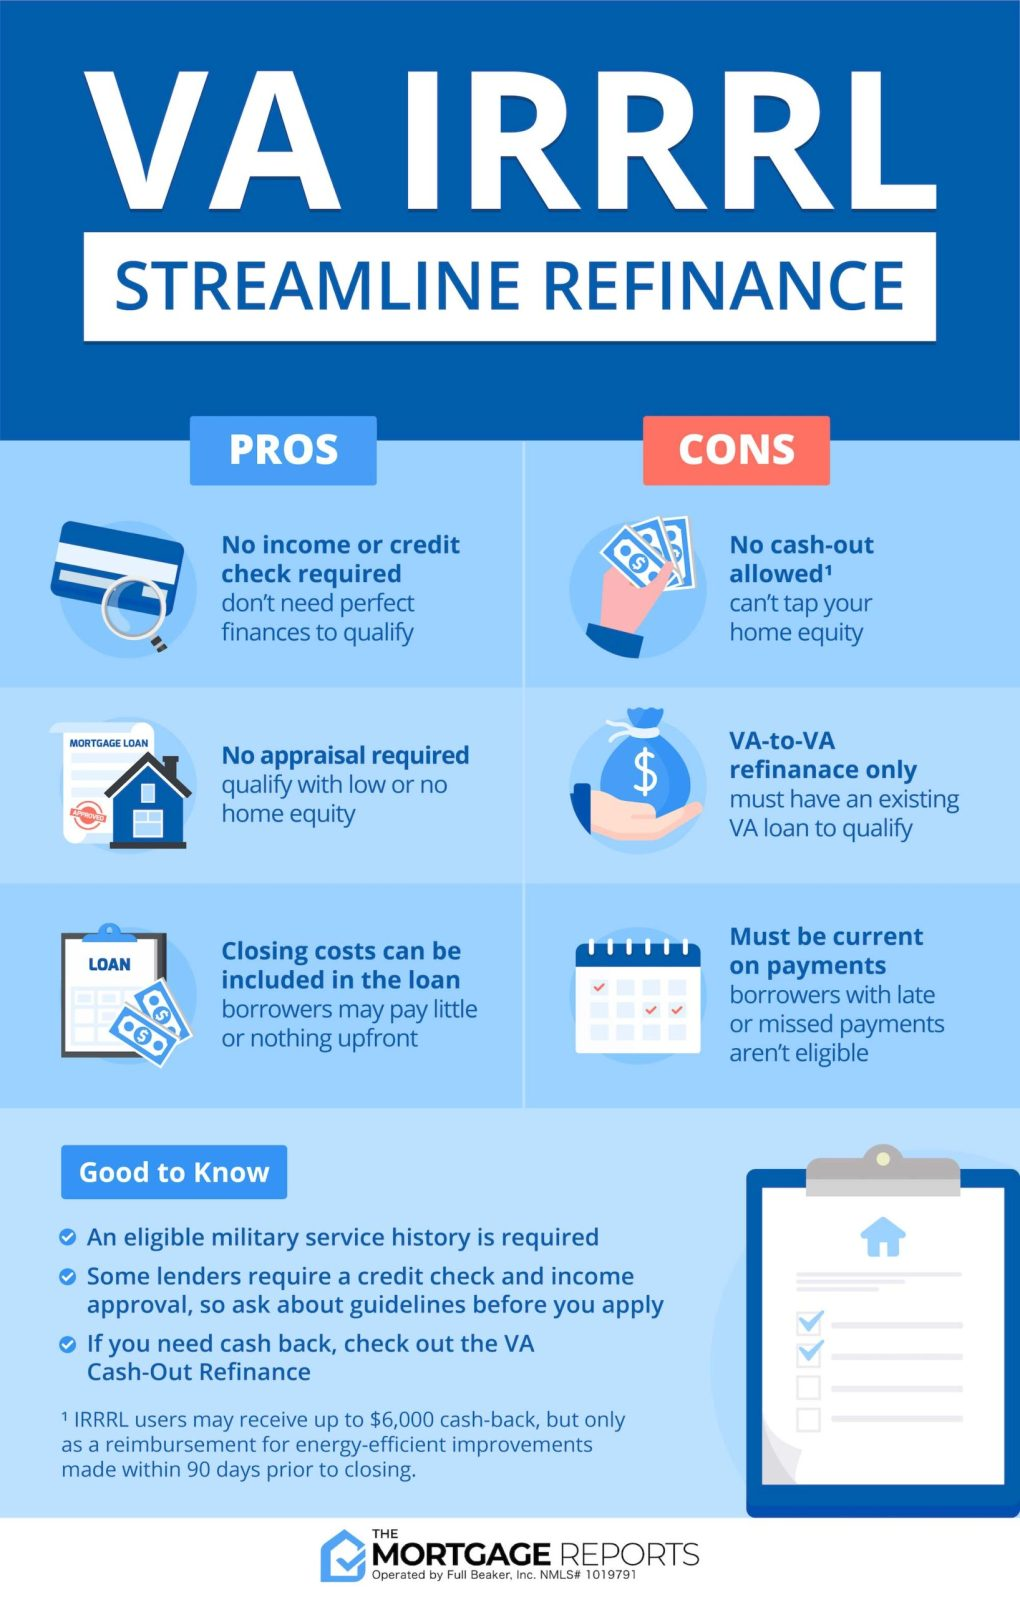 Infographic showing pros and cons of the VA IRRRL (Streamline Refinance). Pros include no income or credit verification; No appraisal; and Closing costs can be rolled into the loan. Cons include no cash out allowed; Must be a VA-to-VA refinance; and Borrower must be current on payments.